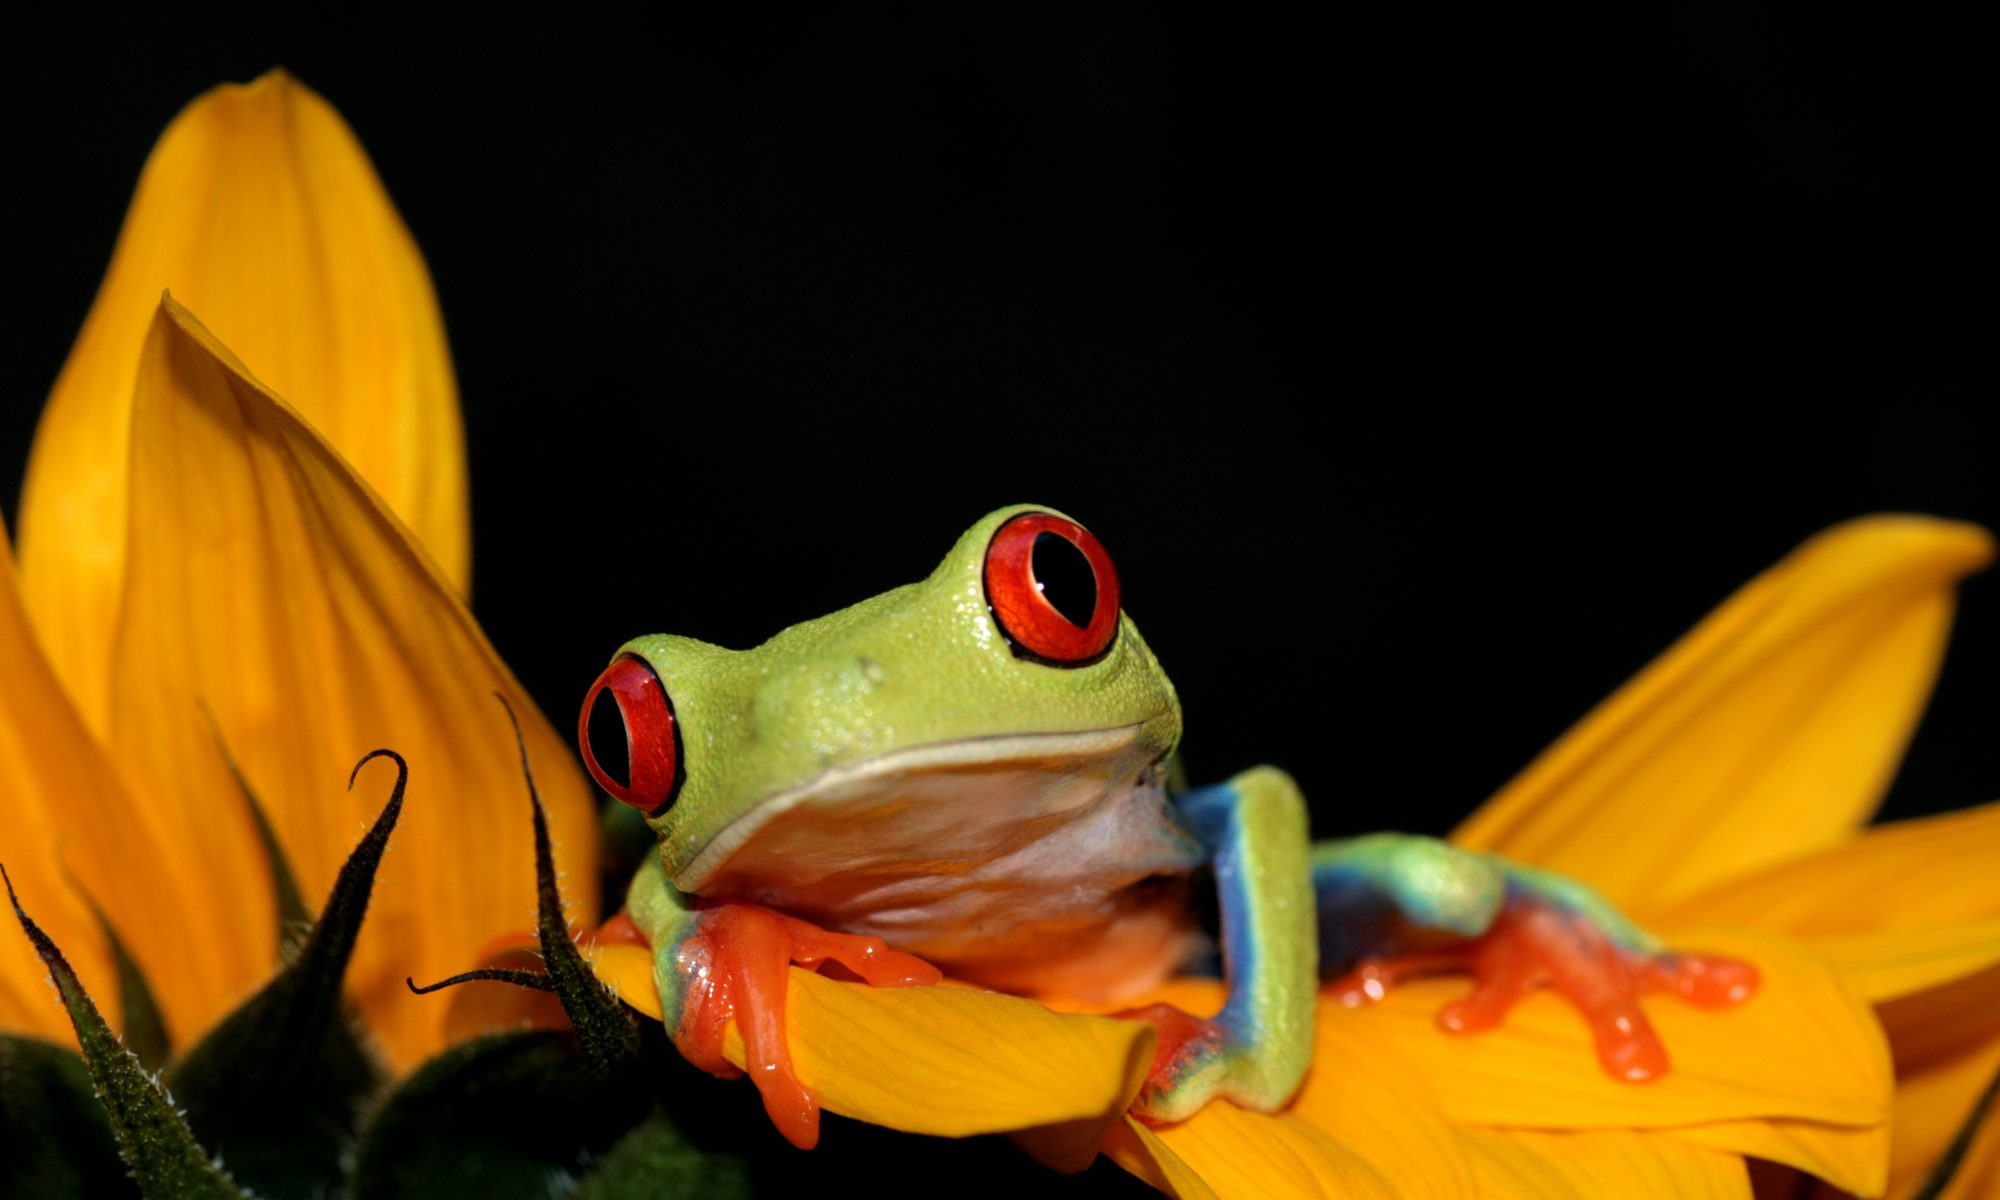 red eyed frog sitting on flower